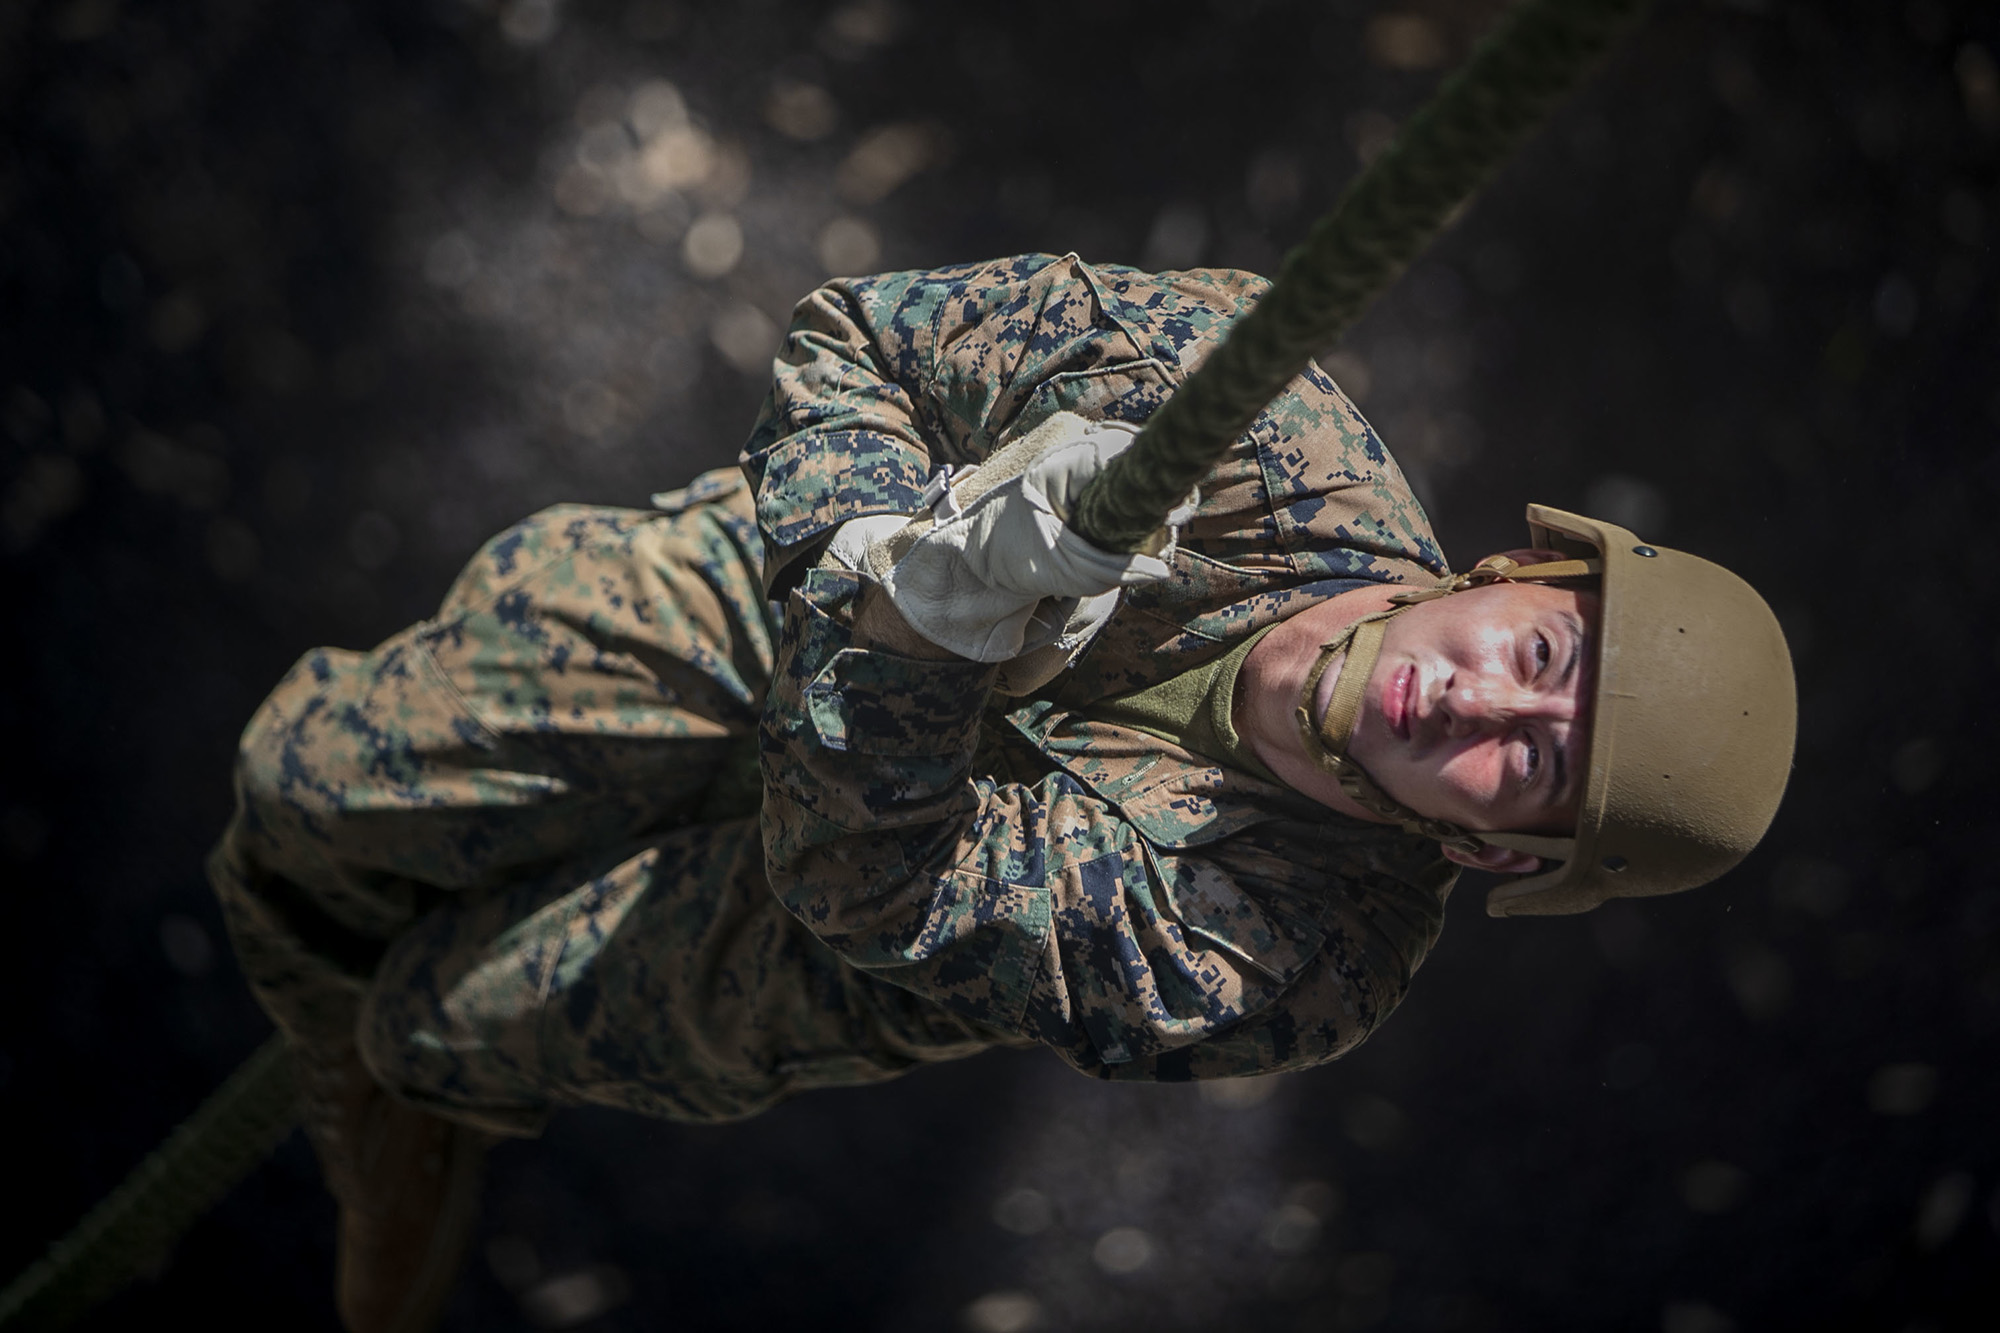 Marine Corps Lance. Cpl. Jonathen Figueroa conducts a fast roping exercise at the Lightning Academy, East Range Training Complex, Hawaii, Aug. 11, 2020. (Sgt. Luke Kuennen/Marine Corps)